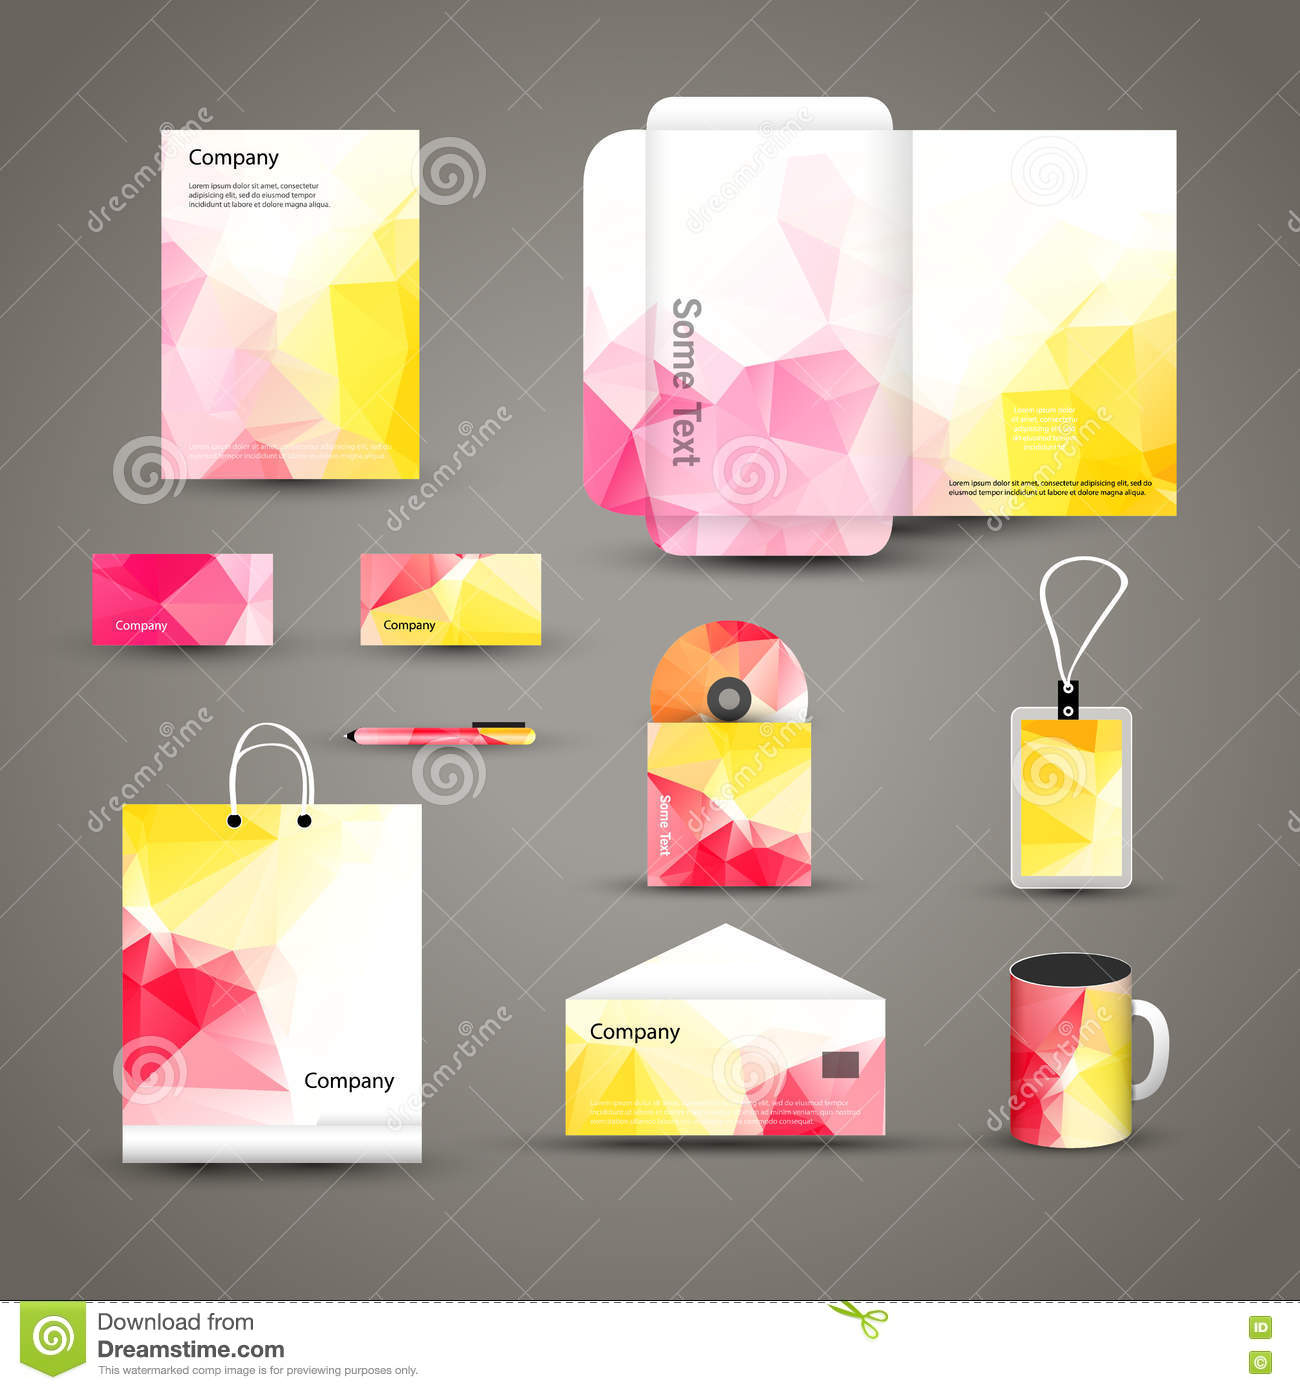 Corporate brand business identity design template layout letter corporate brand business identity design template layout letter letterhead folder card spiritdancerdesigns Choice Image